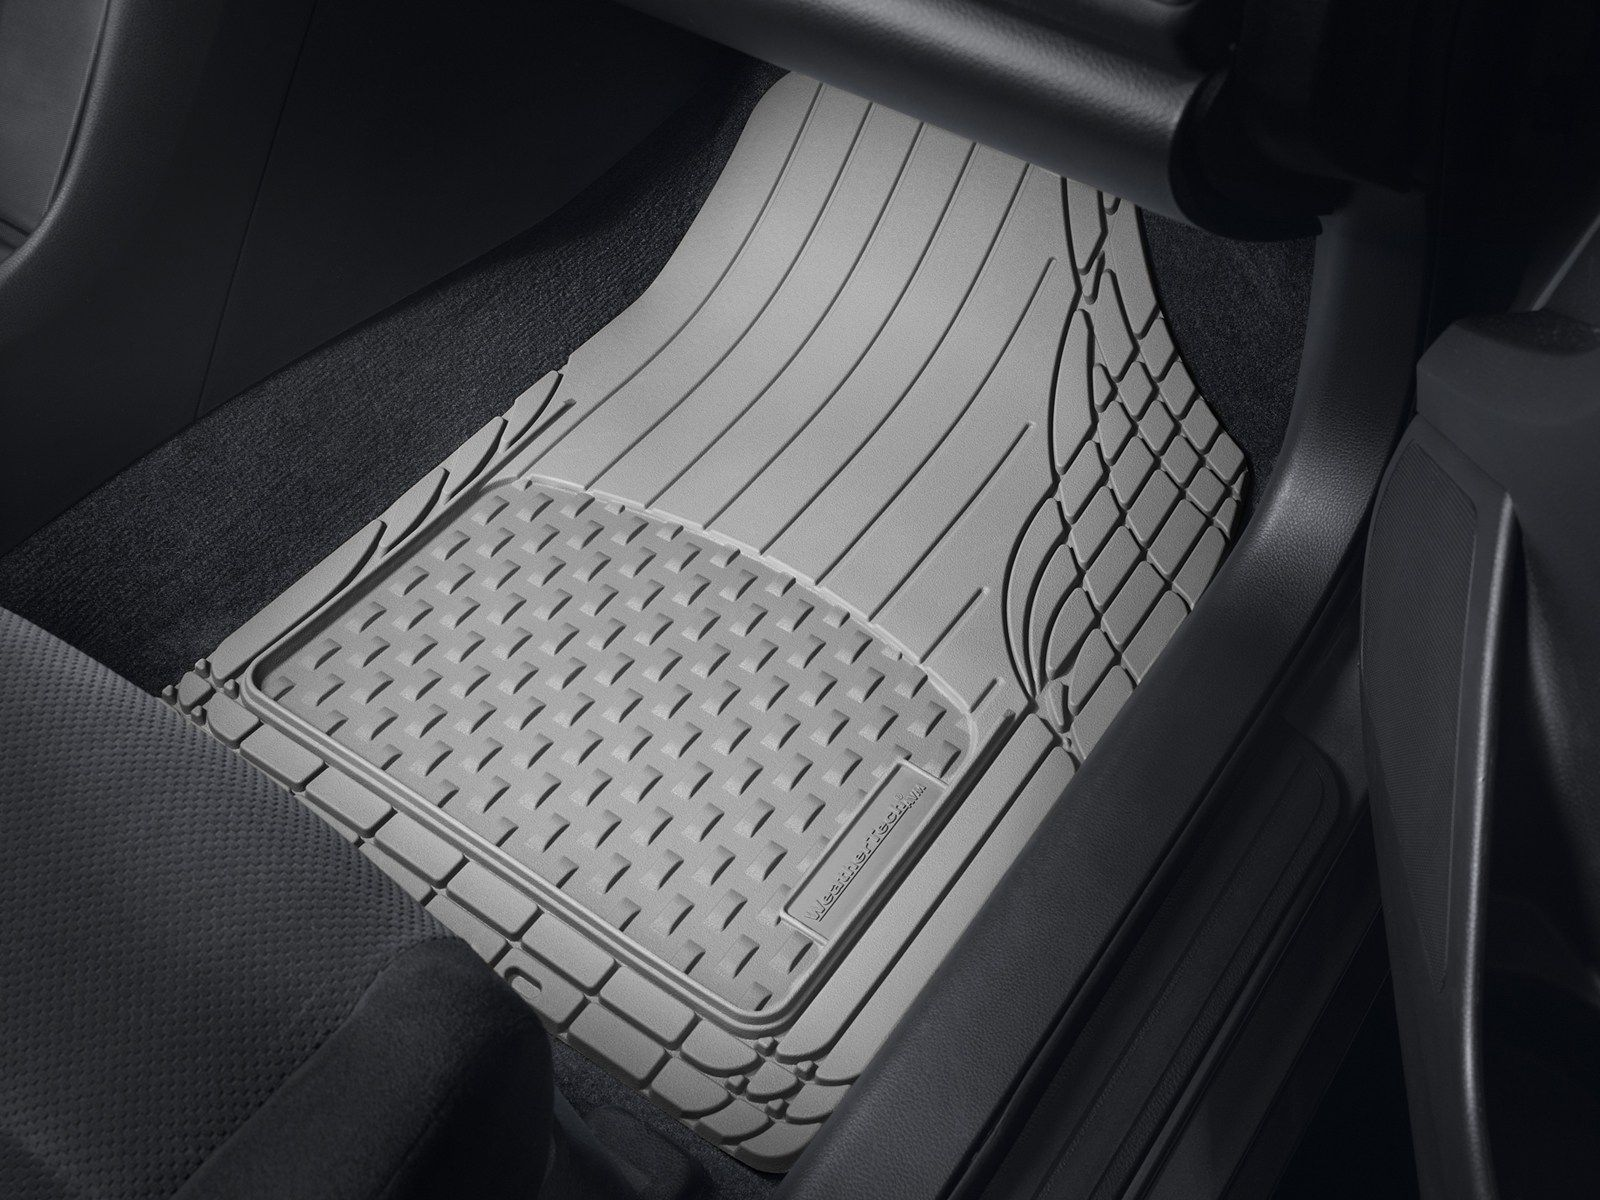 body chrysler weathertech mat appearance attachment car winter mats print floor forum